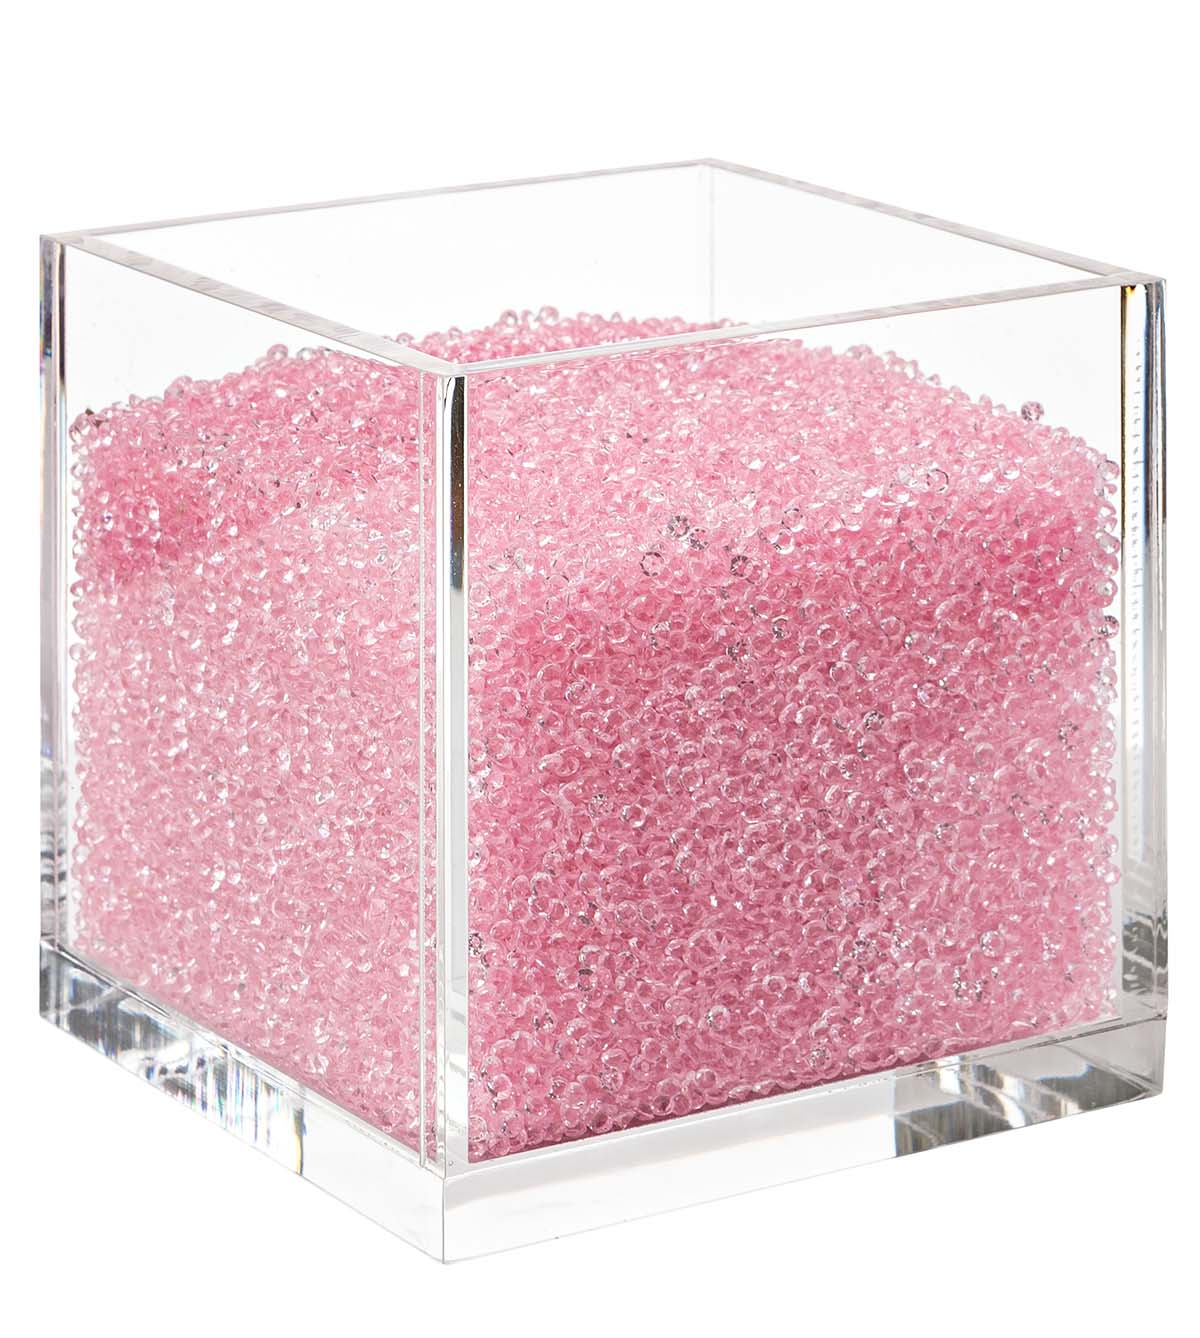 Acrylic Cube Organizer With Crystals Pink